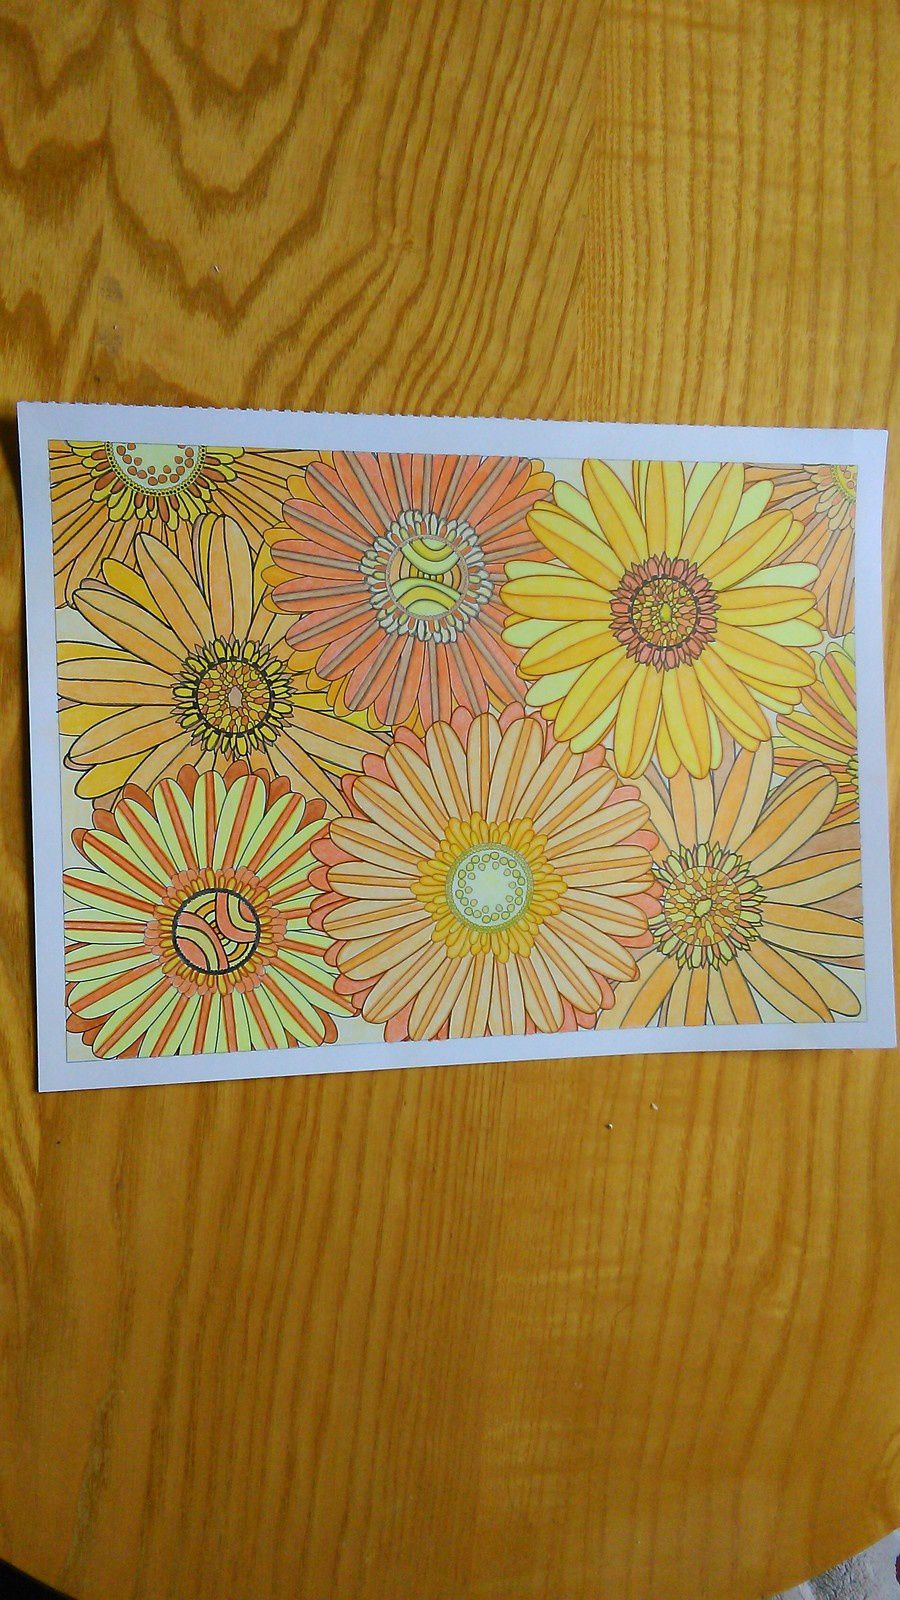 3ème coloriage : variation en jaune-orange